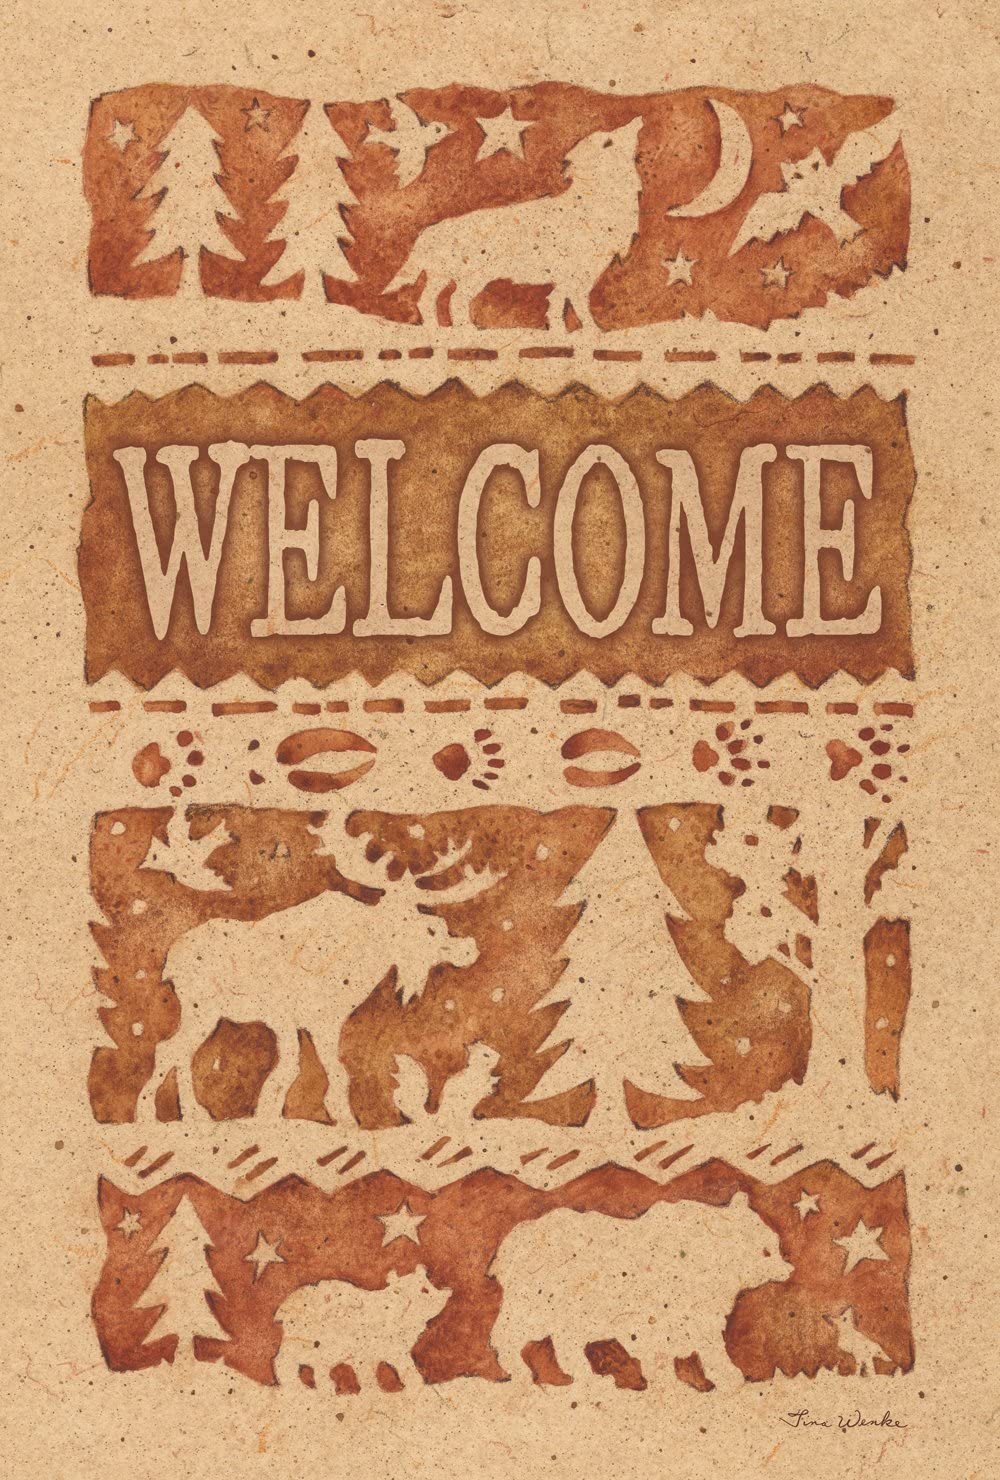 Toland Home Garden Wildlife Welcome 28 x 40 Inch Decorative Rustic Outdoors Forest Animal Bear Moose Wolf House Flag